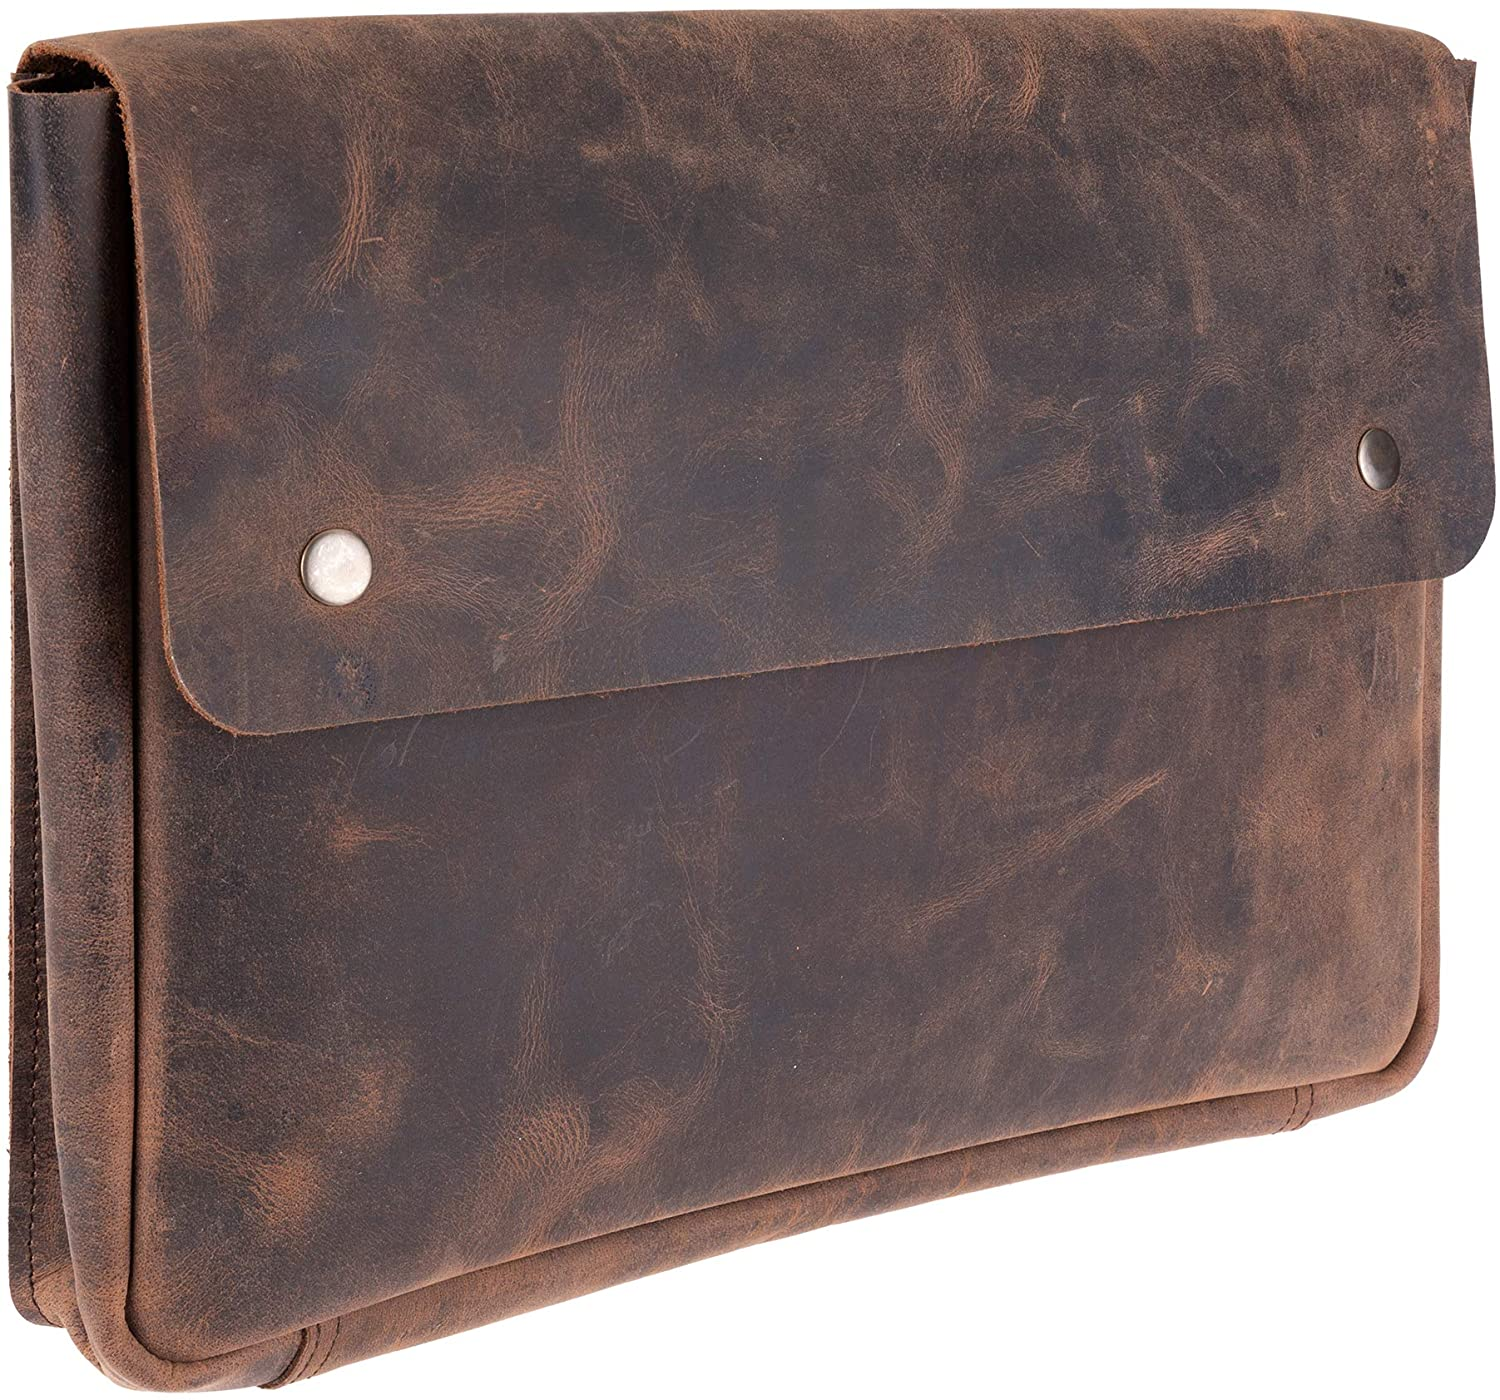 "Genuine Leather Laptop Bag - Portfolio Sleeve – Spacious, Handmade Strapless Design – Distressed, Rustic Buffalo Leather Folder Holder – Perfect for 13"" 14"" 15"" Laptops, MacBook & Tablets"